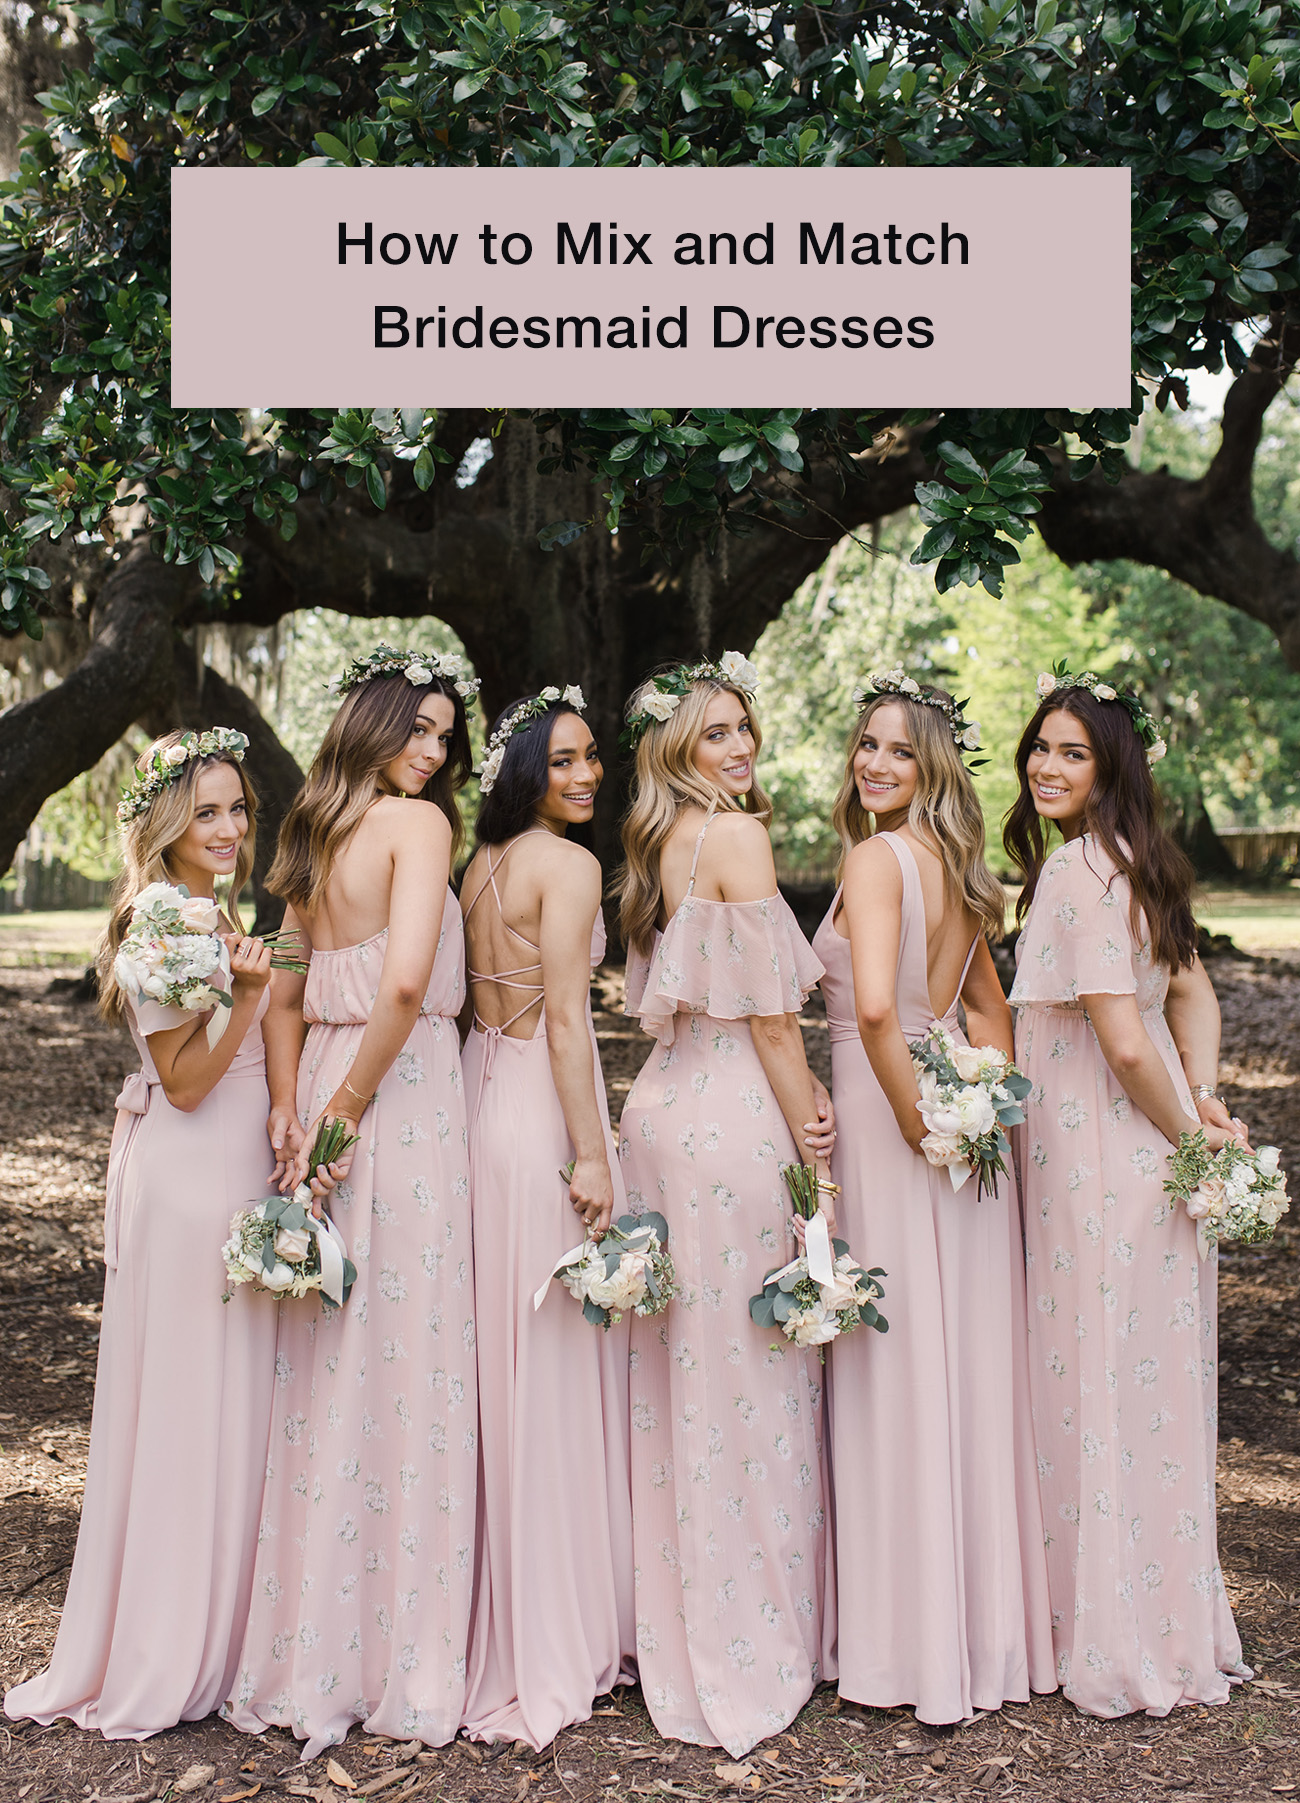 cd09201ad13 How to Mix and Match Bridesmaid Dresses - Green Wedding Shoes